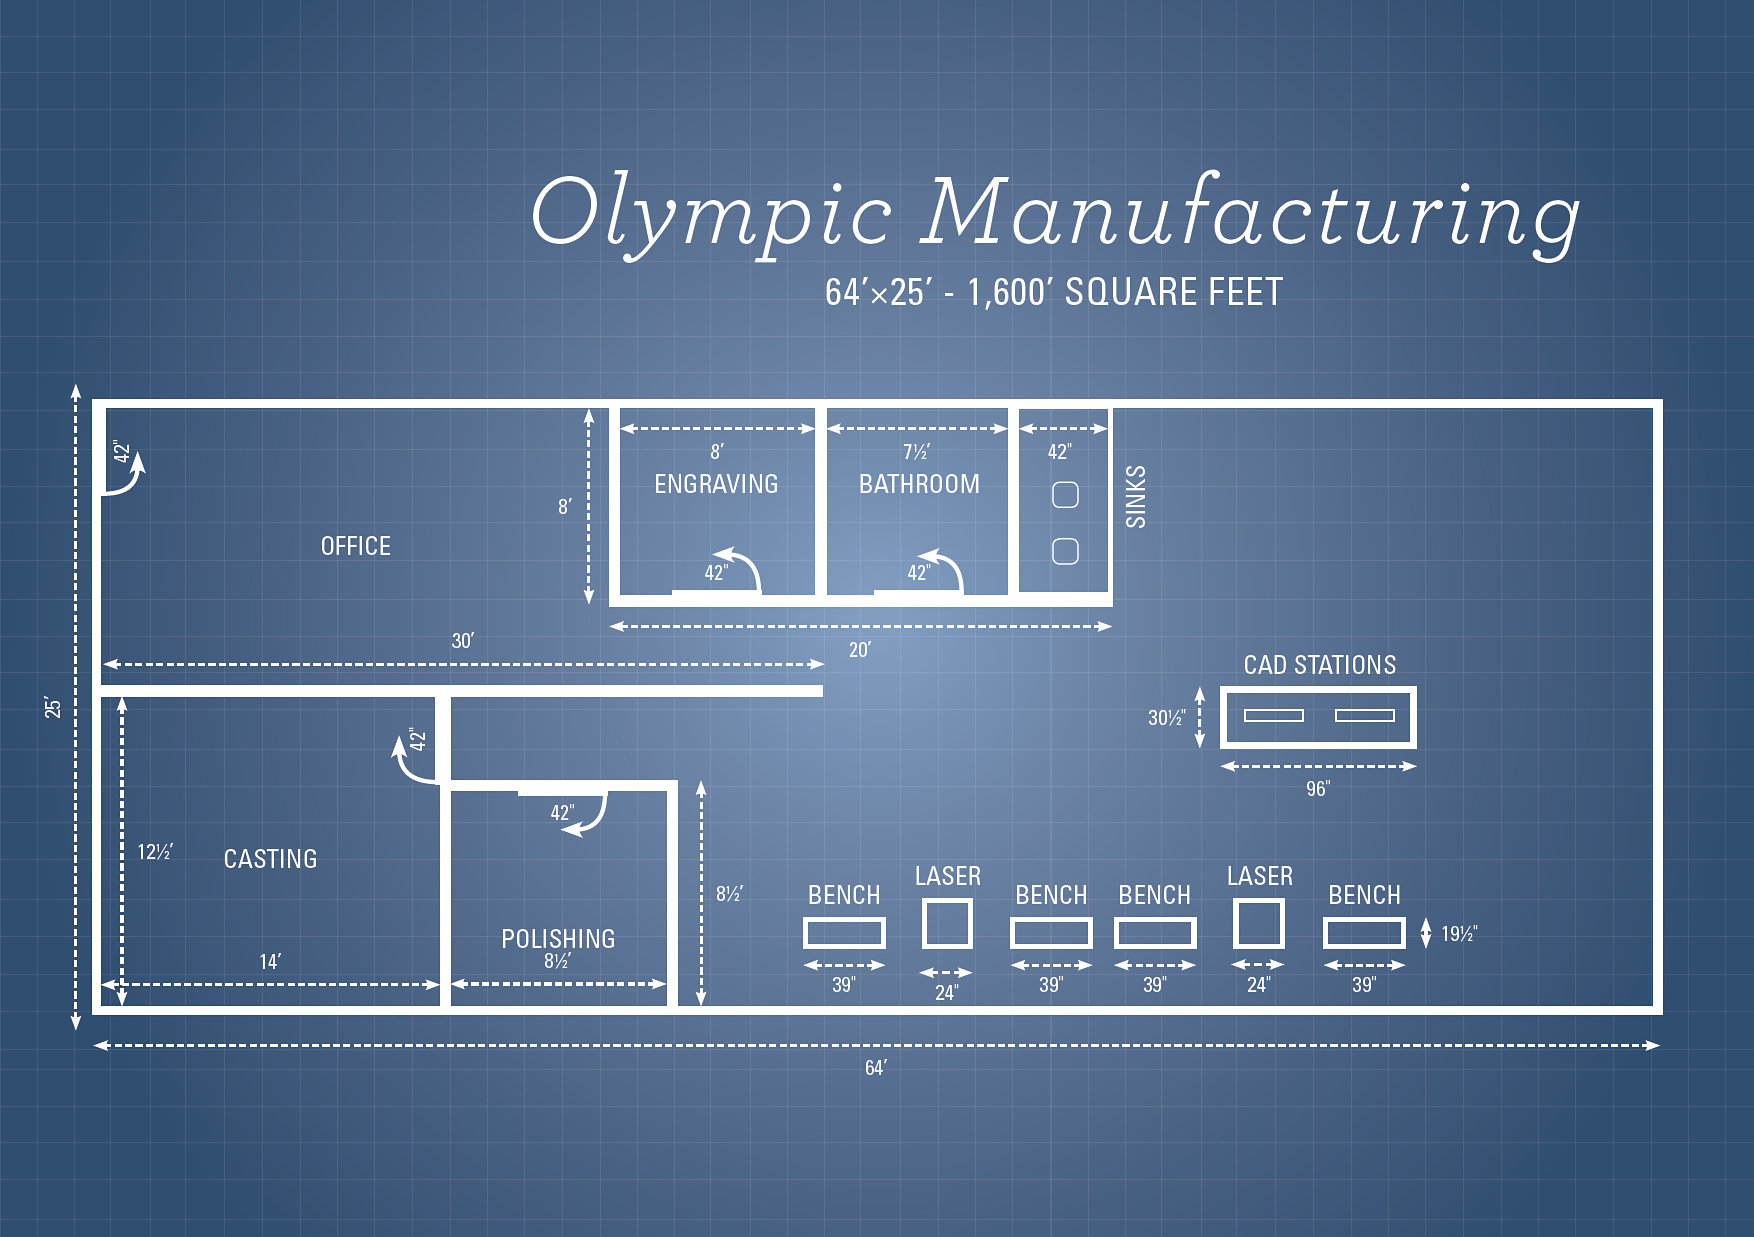 Olympic Manufacturing - Blueprint